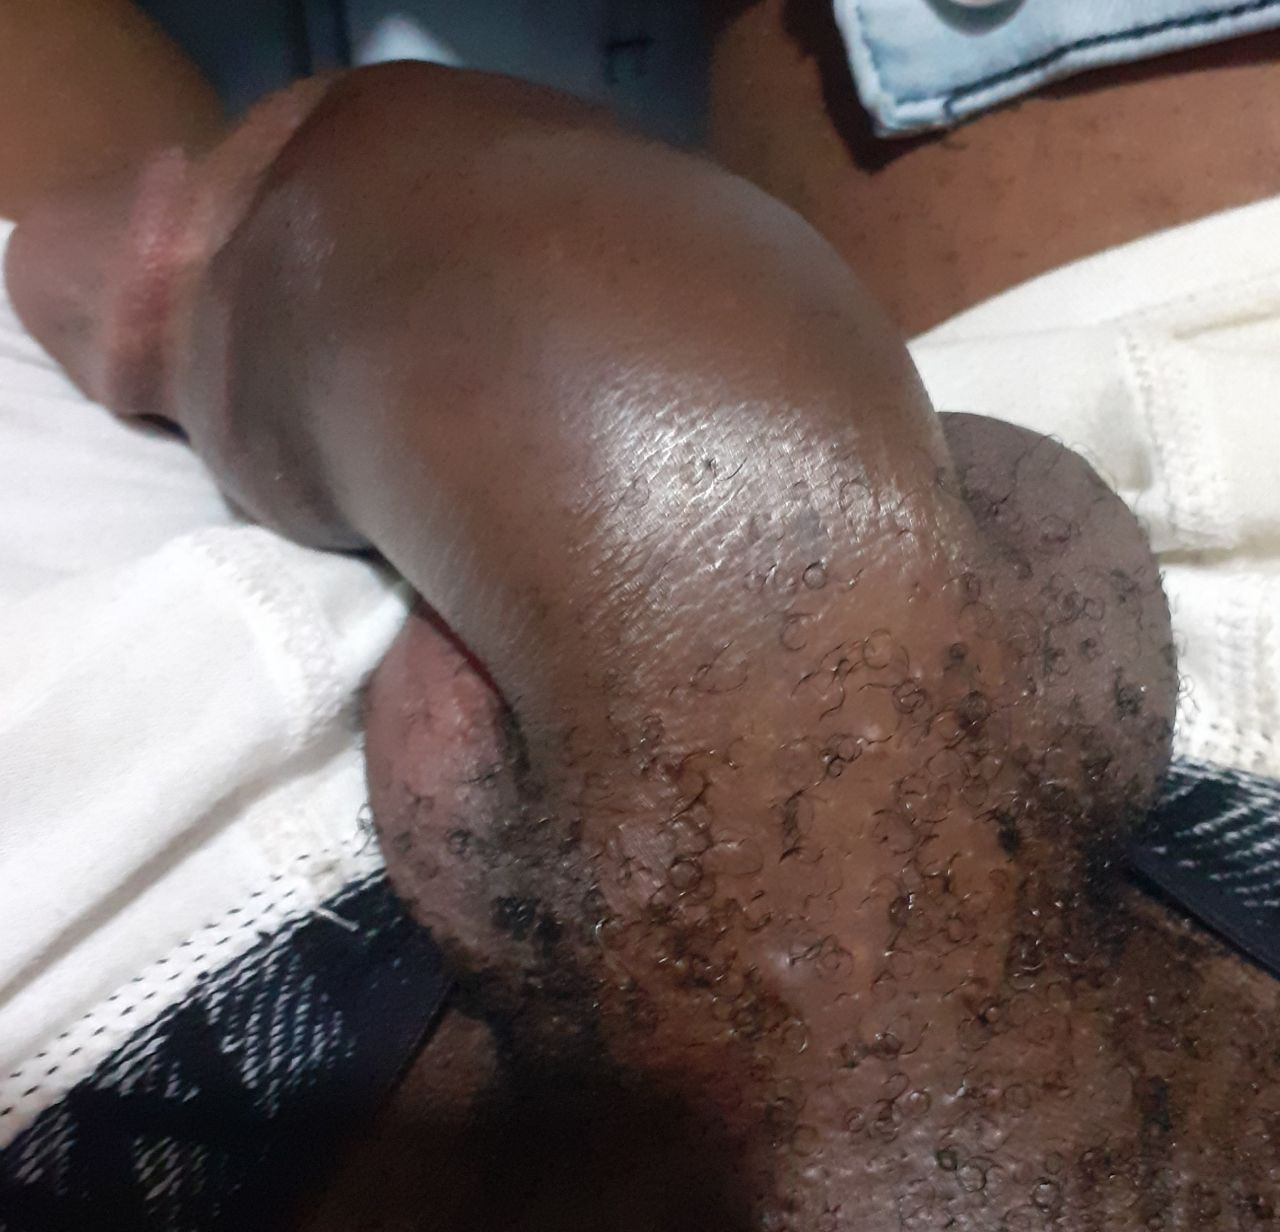 Nigerian man suffers penile fracture while engaging in rigorous sex with his partner (graphic photos)